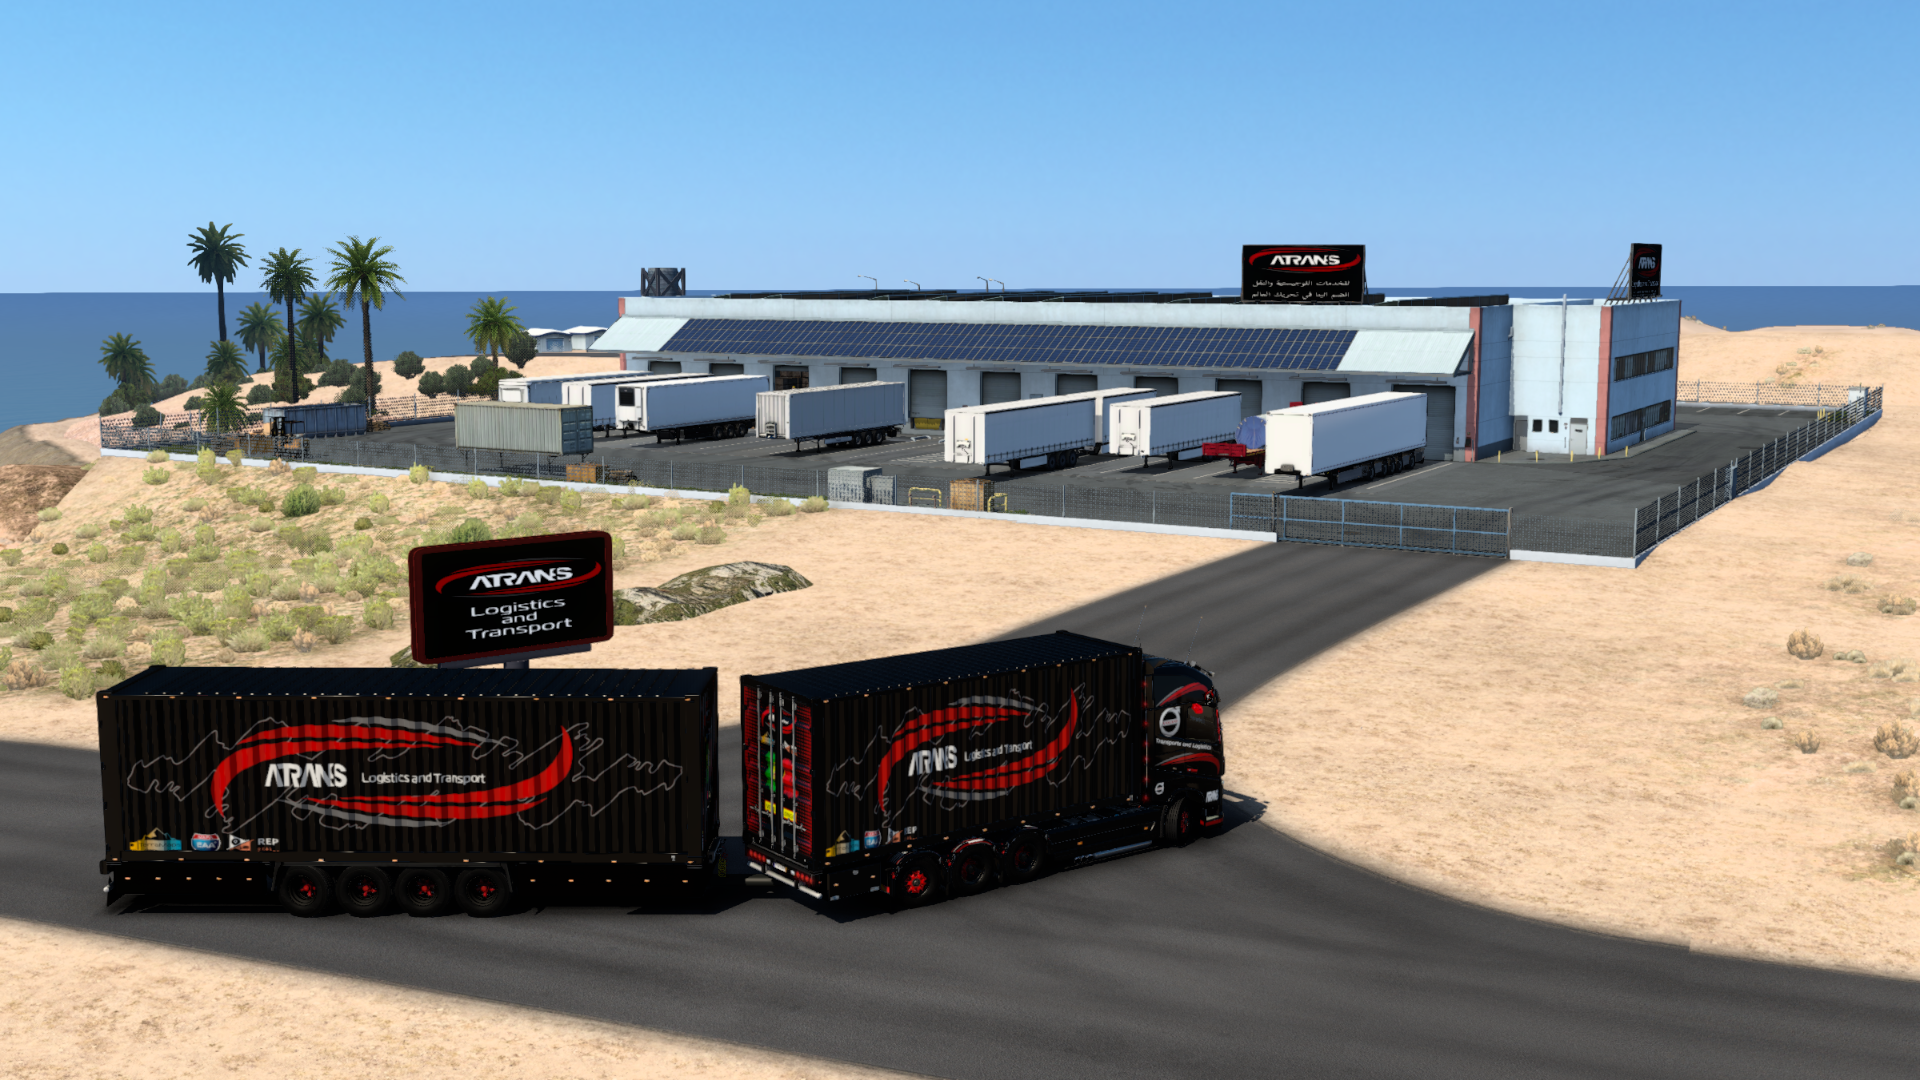 ets2_20210919_190752_00.png